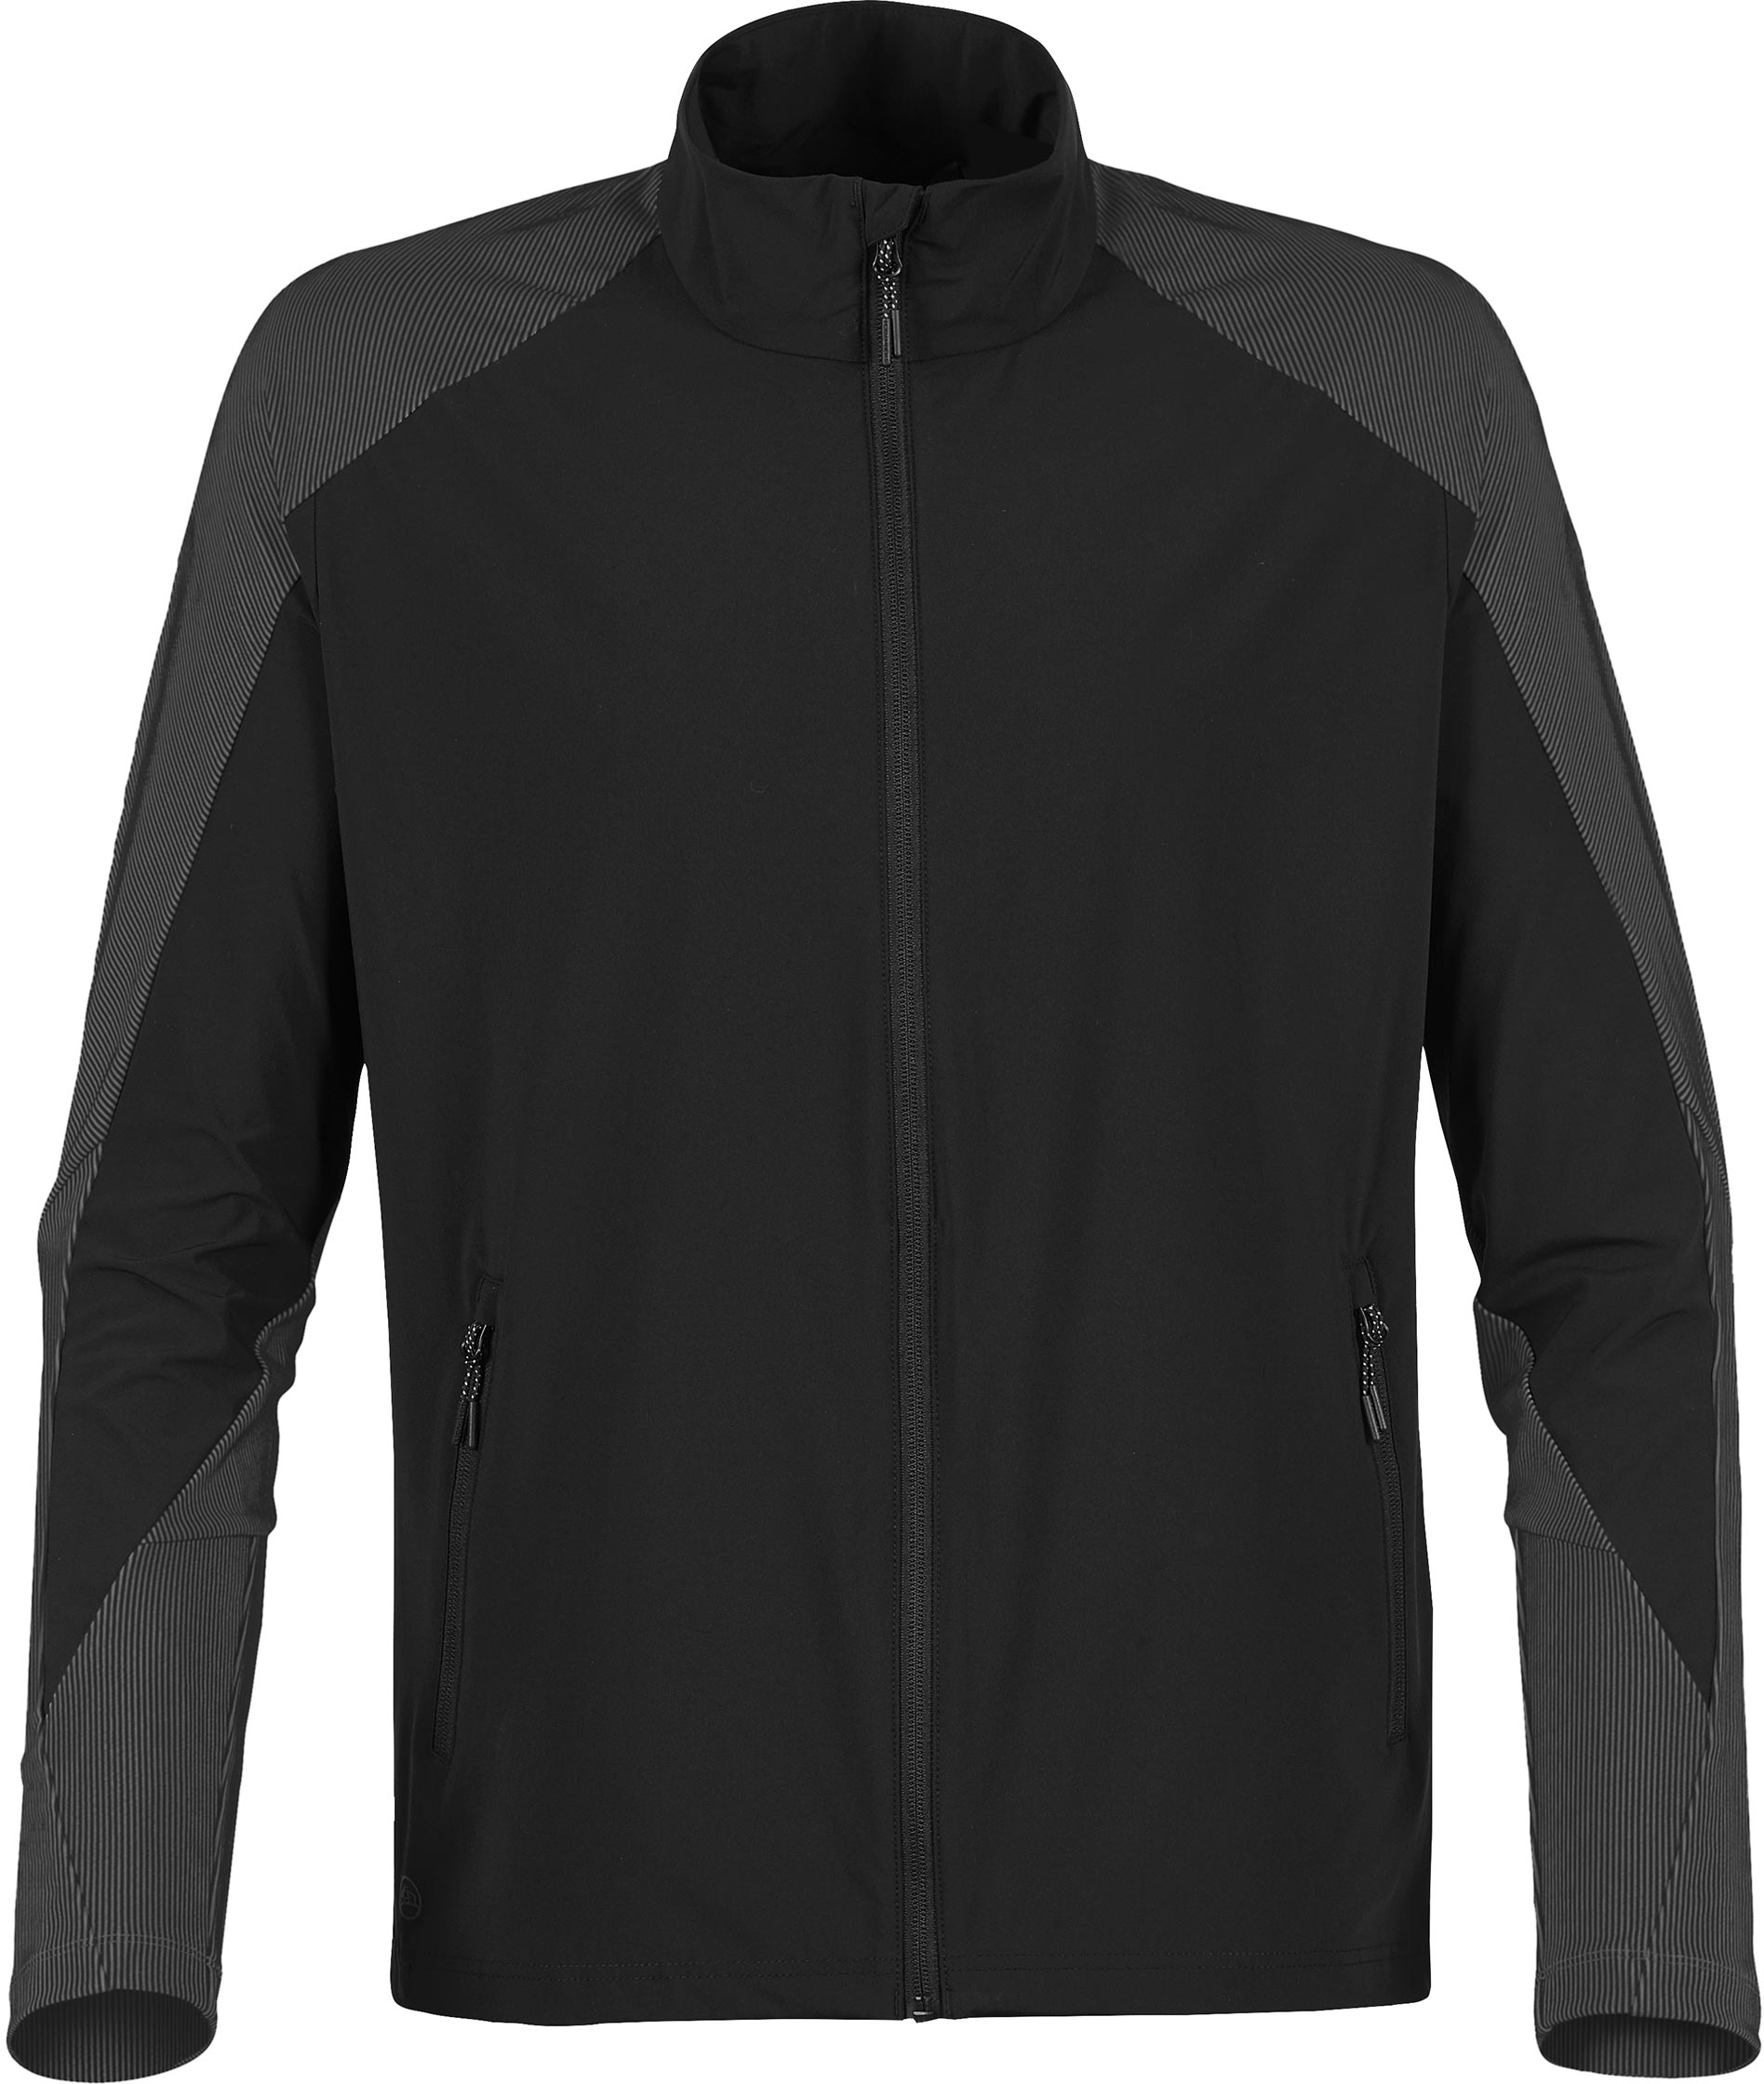 Stormtech NW-1 - Men's Octane Lightweight Shell Jacket